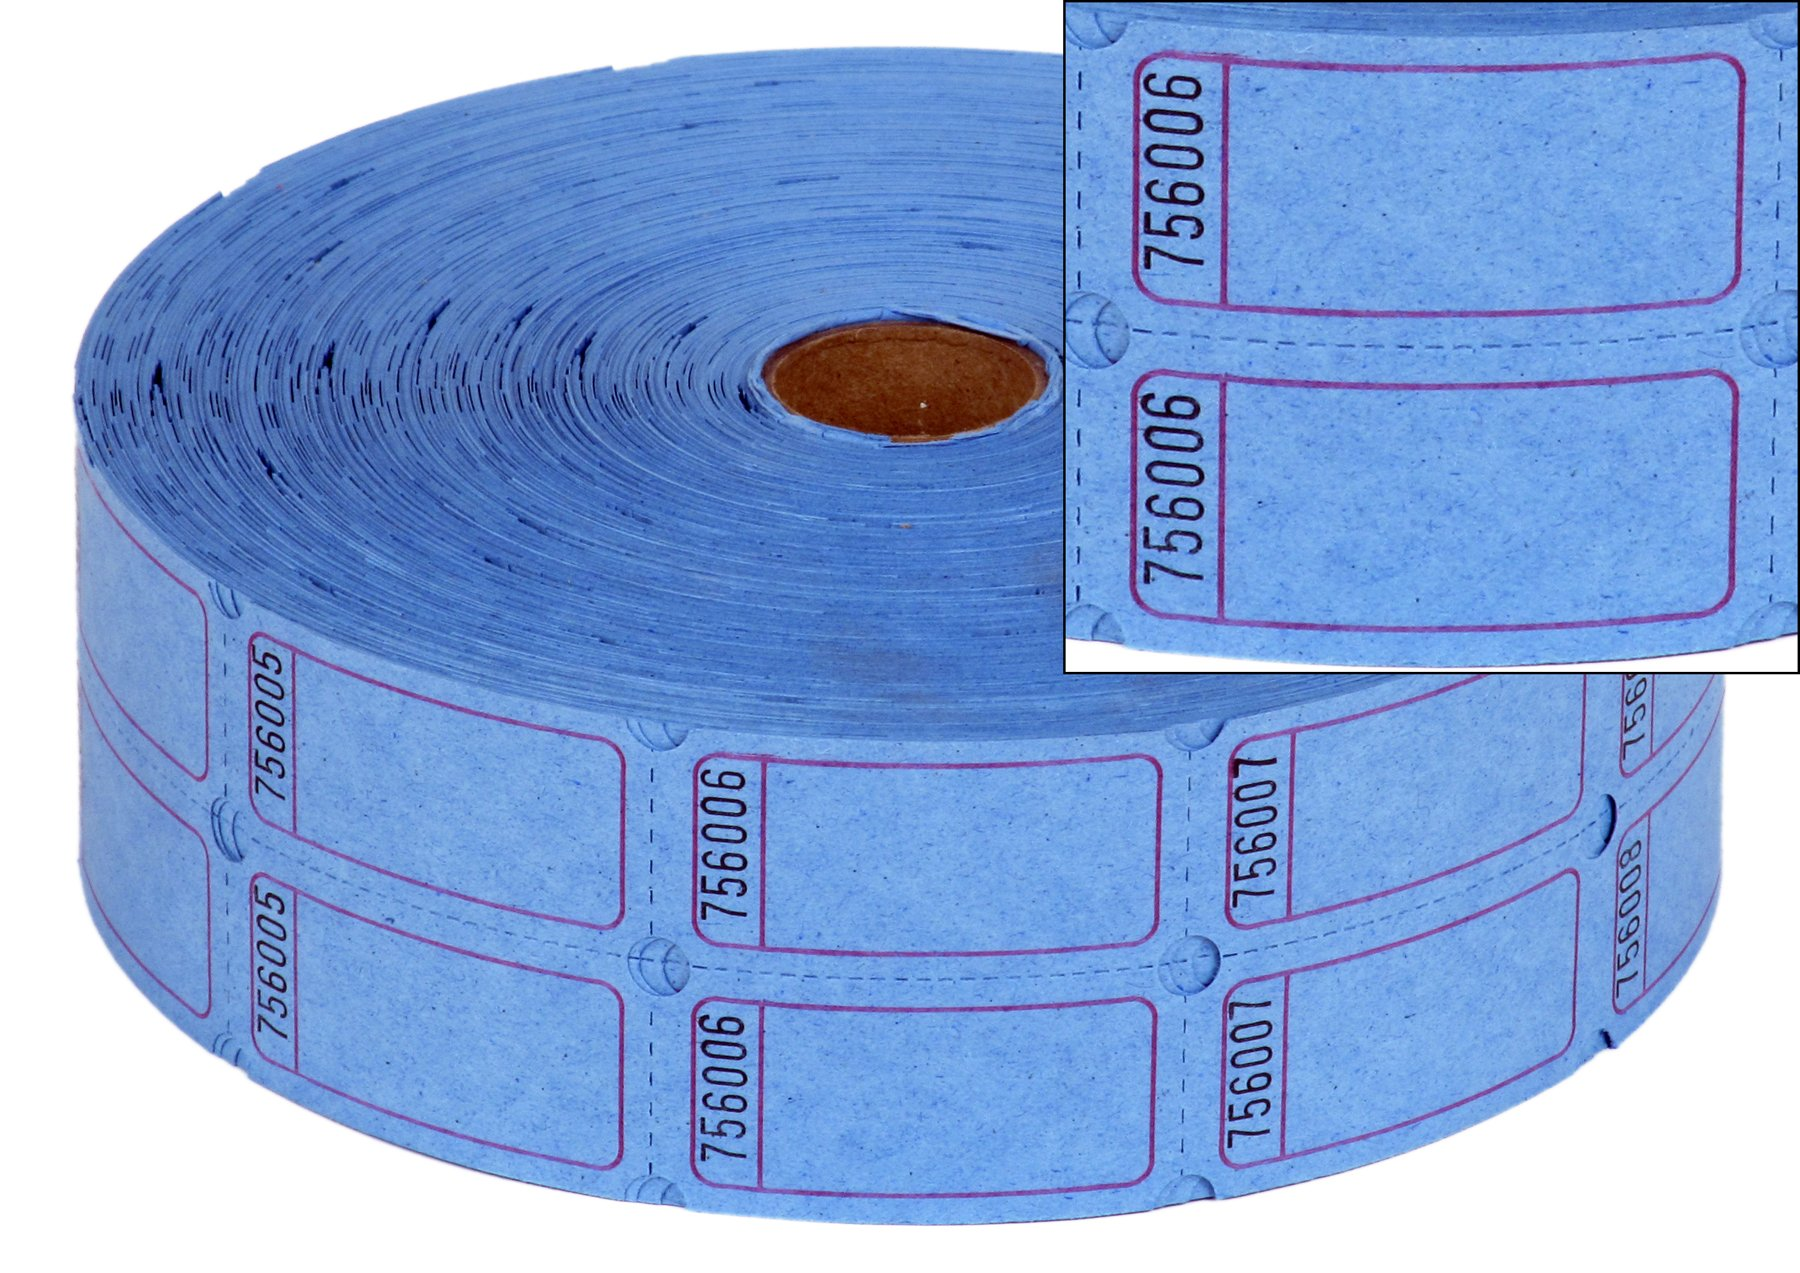 eCart Products Double Roll Ticket - Blue Blank. 2000 tickets per roll.